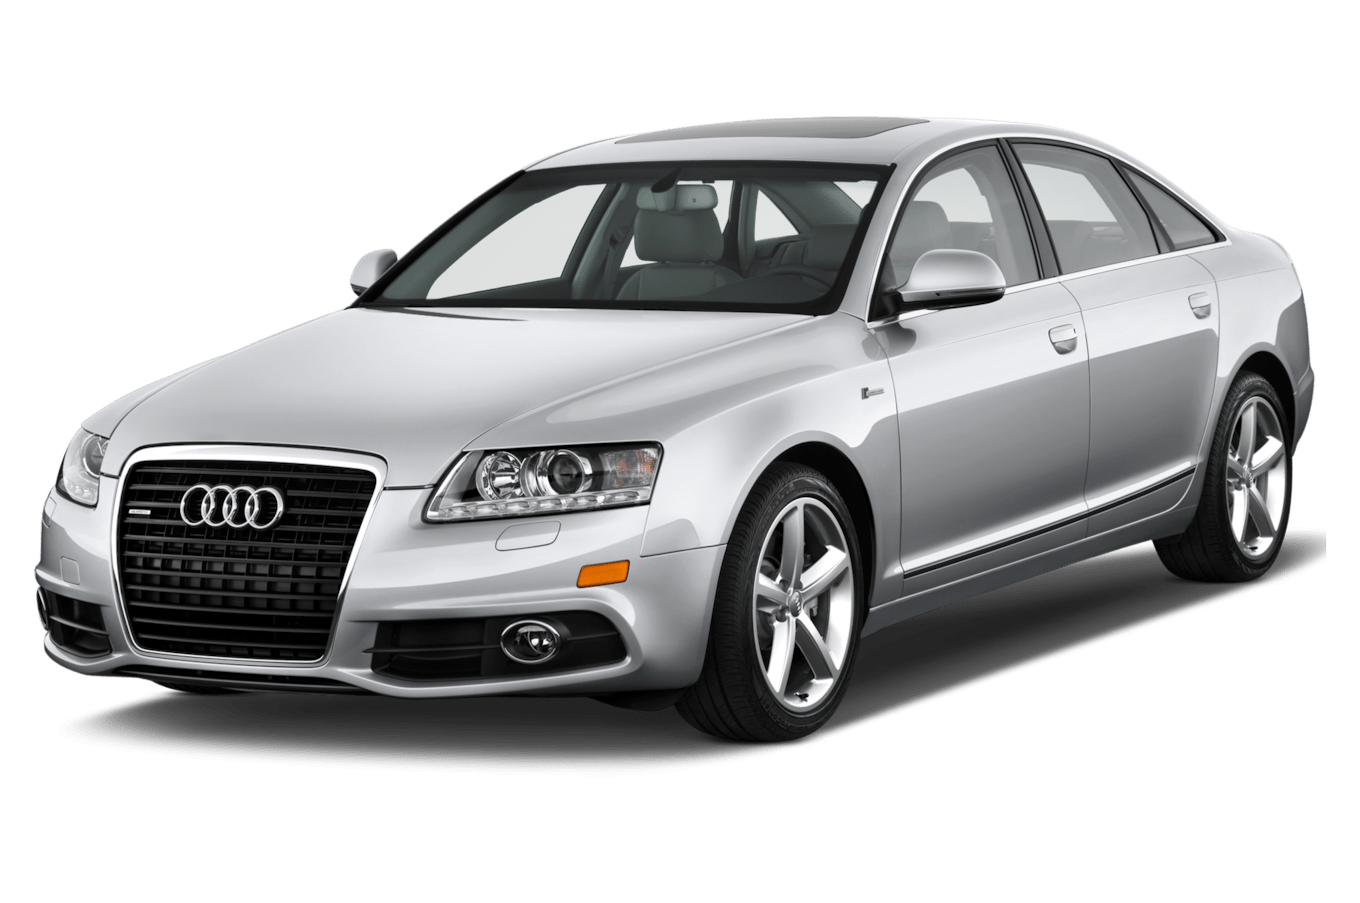 Audi A6 Quattro 2011 Audi A6 Reviews And Rating Motortrend